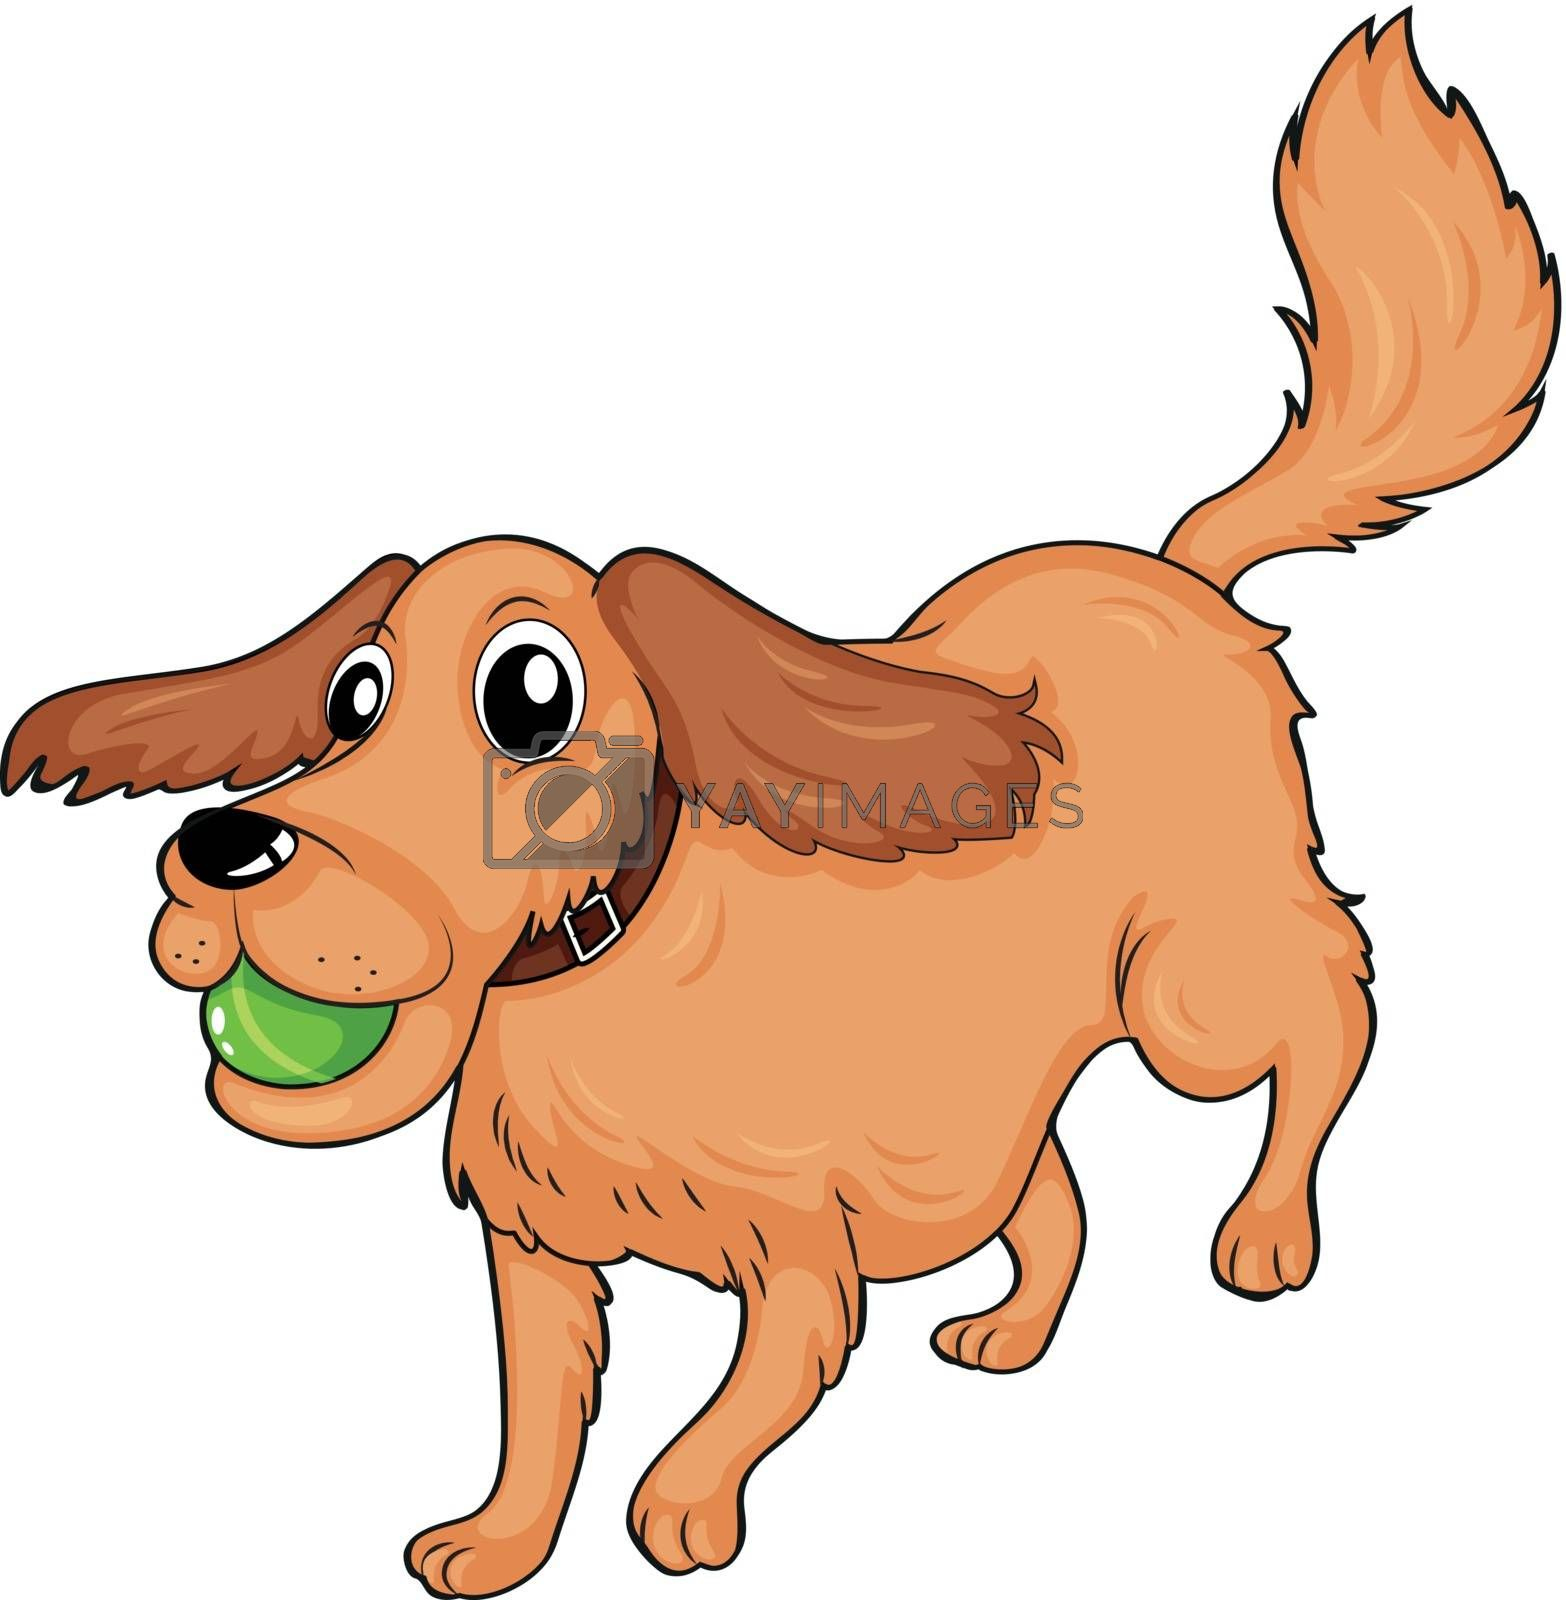 Illustration of a dog playing with the ball on a white background